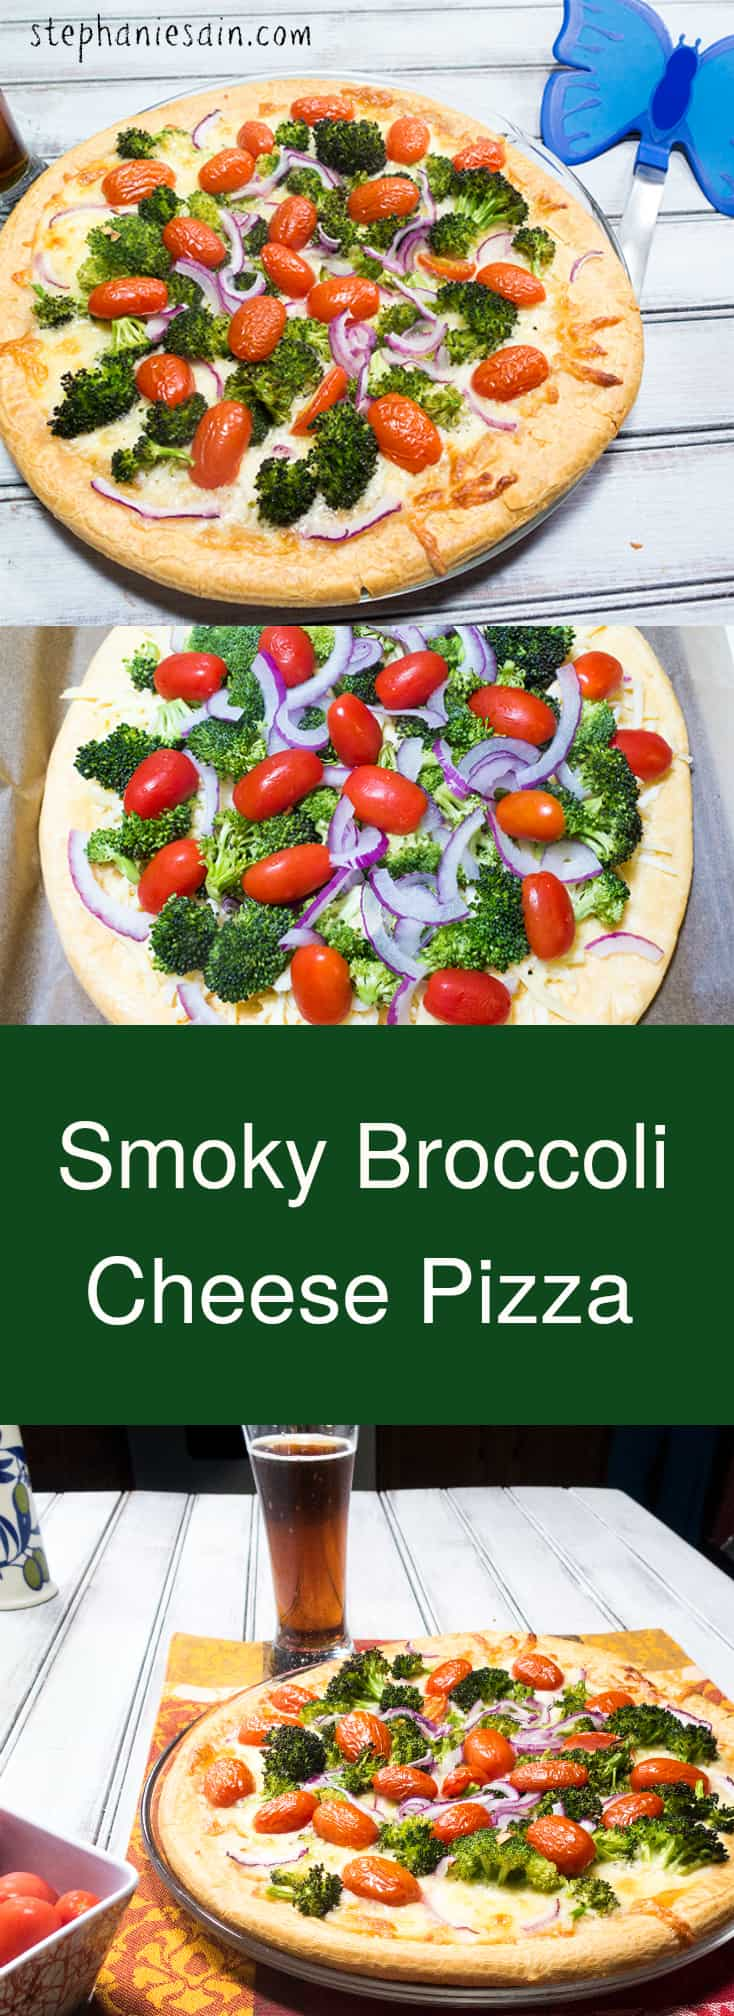 Smoky Broccoli Cheese Pizza is a tasty, easy to prepare pizza with a great smoky flavor. Vegetarian and Gluten Free.